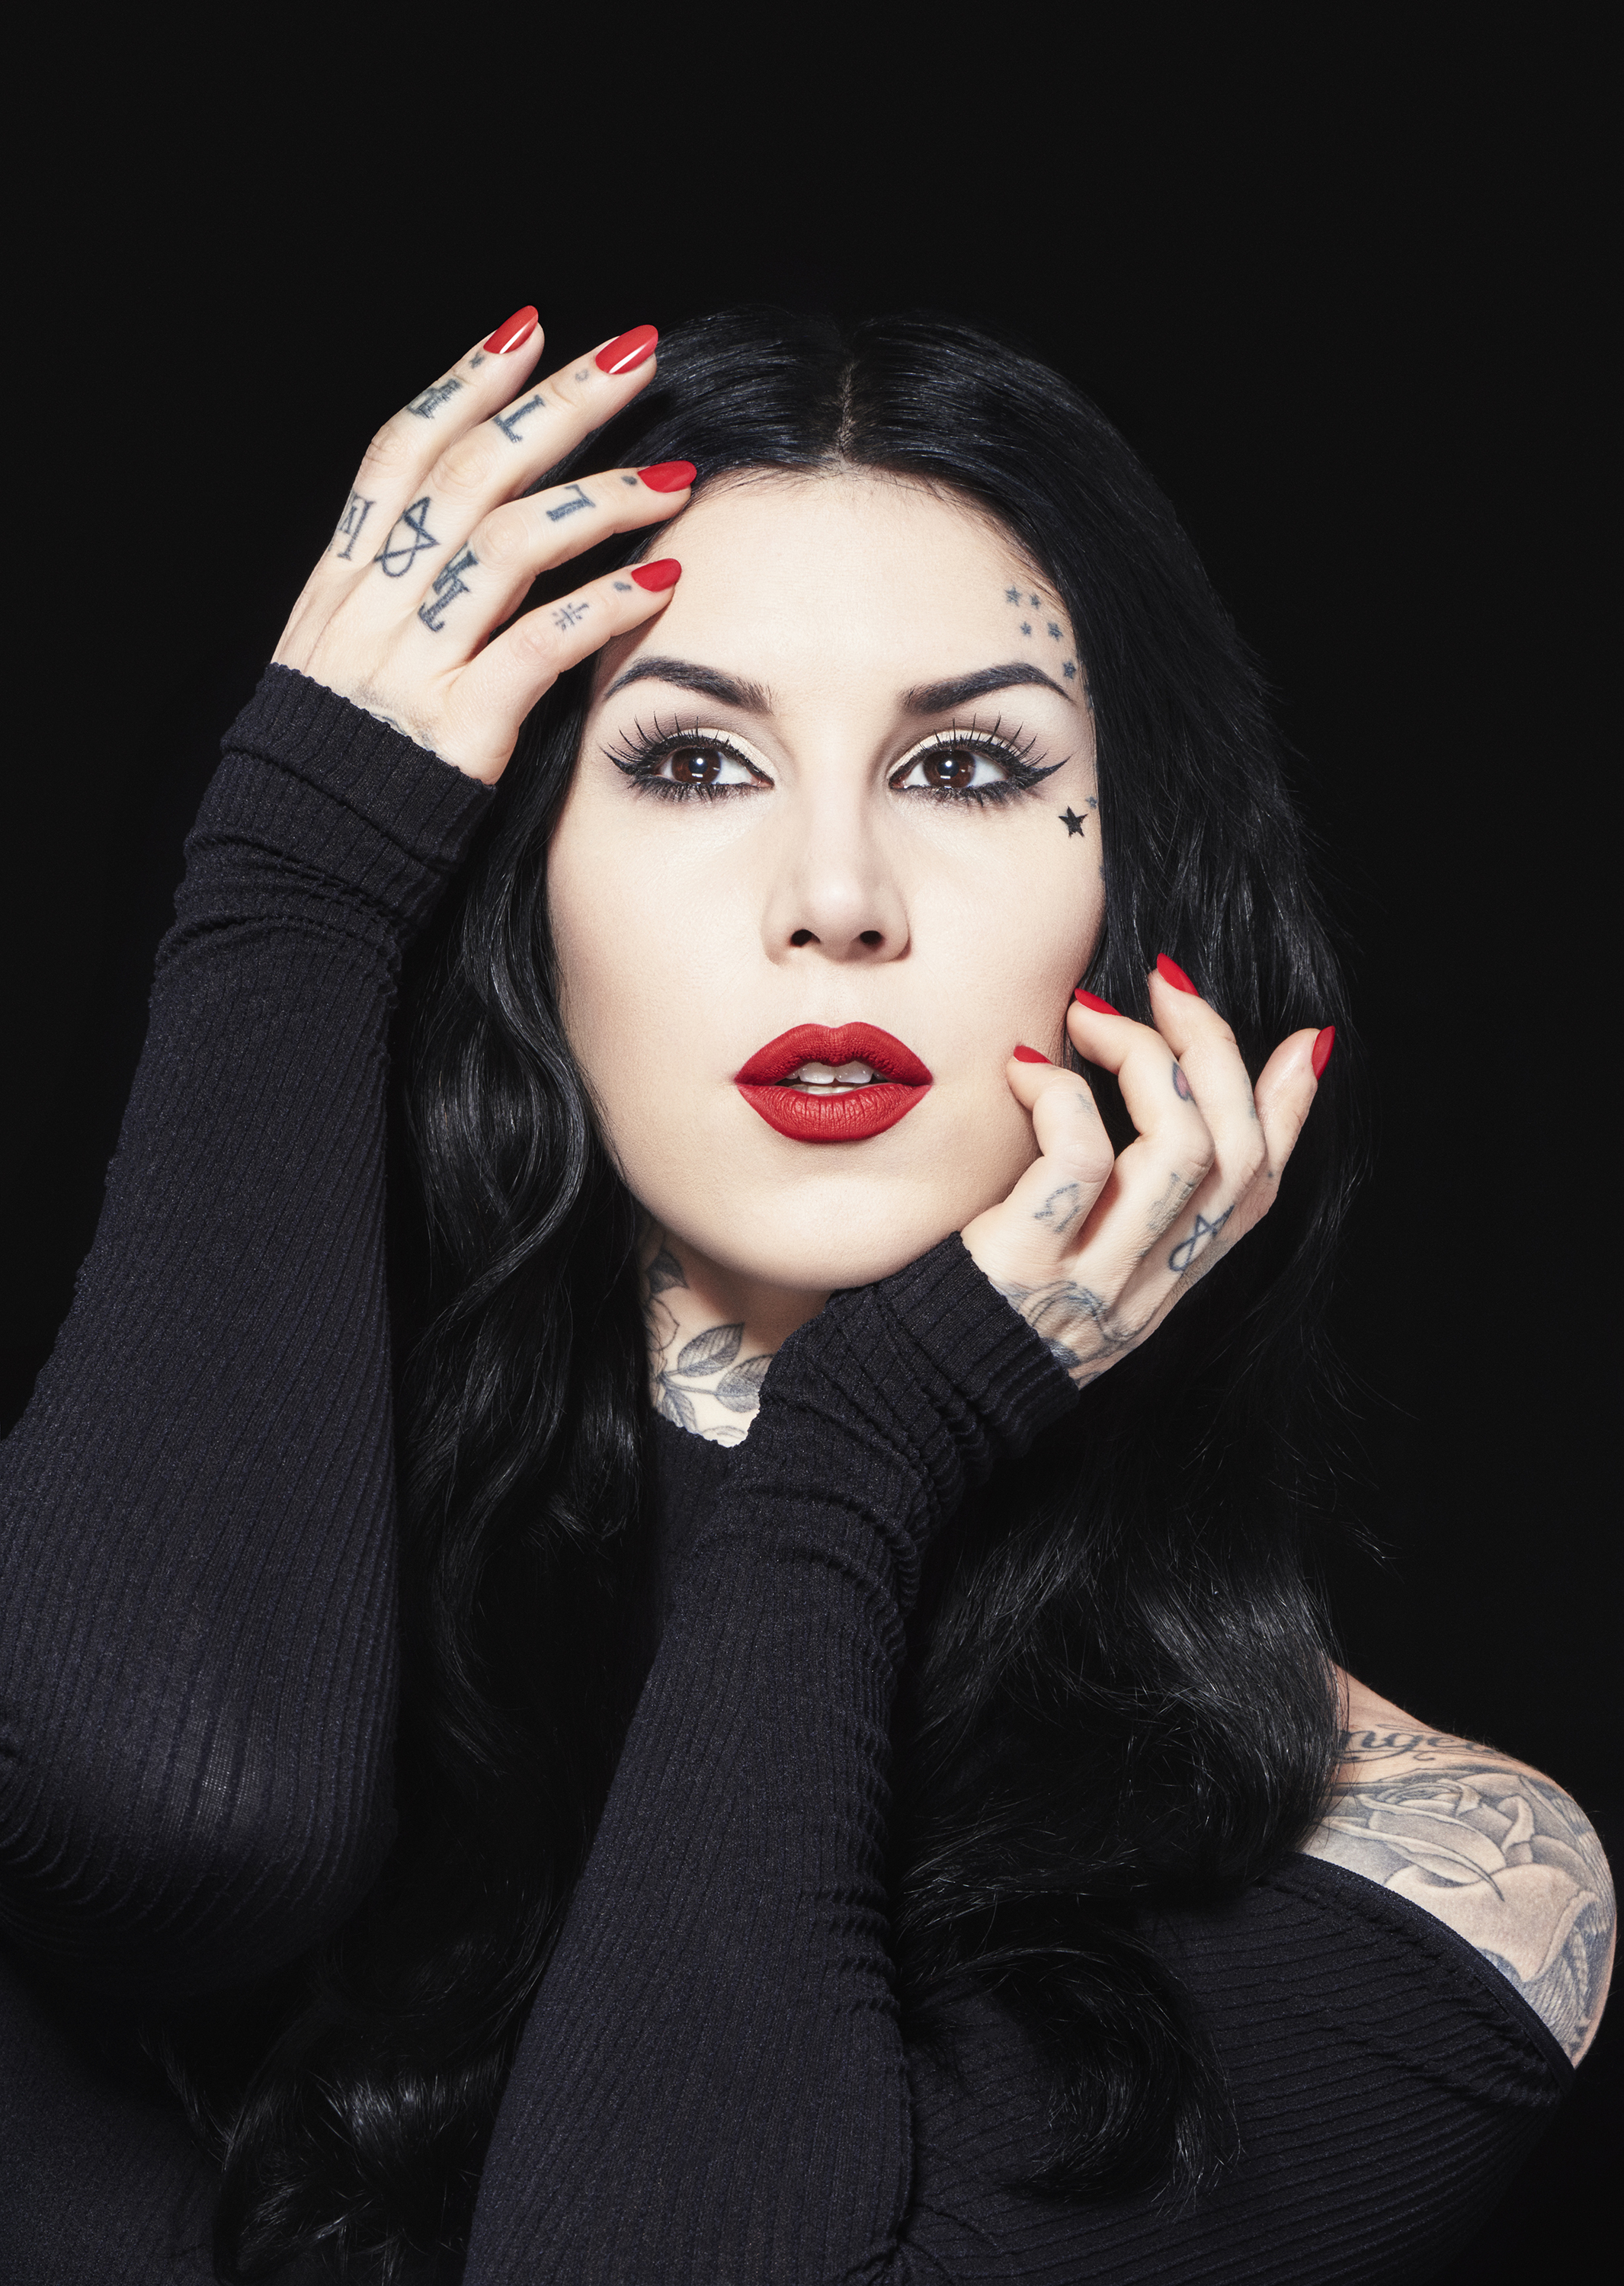 Kat von d snapchat username snapcode gazette review for How to get tattooed by kat von d